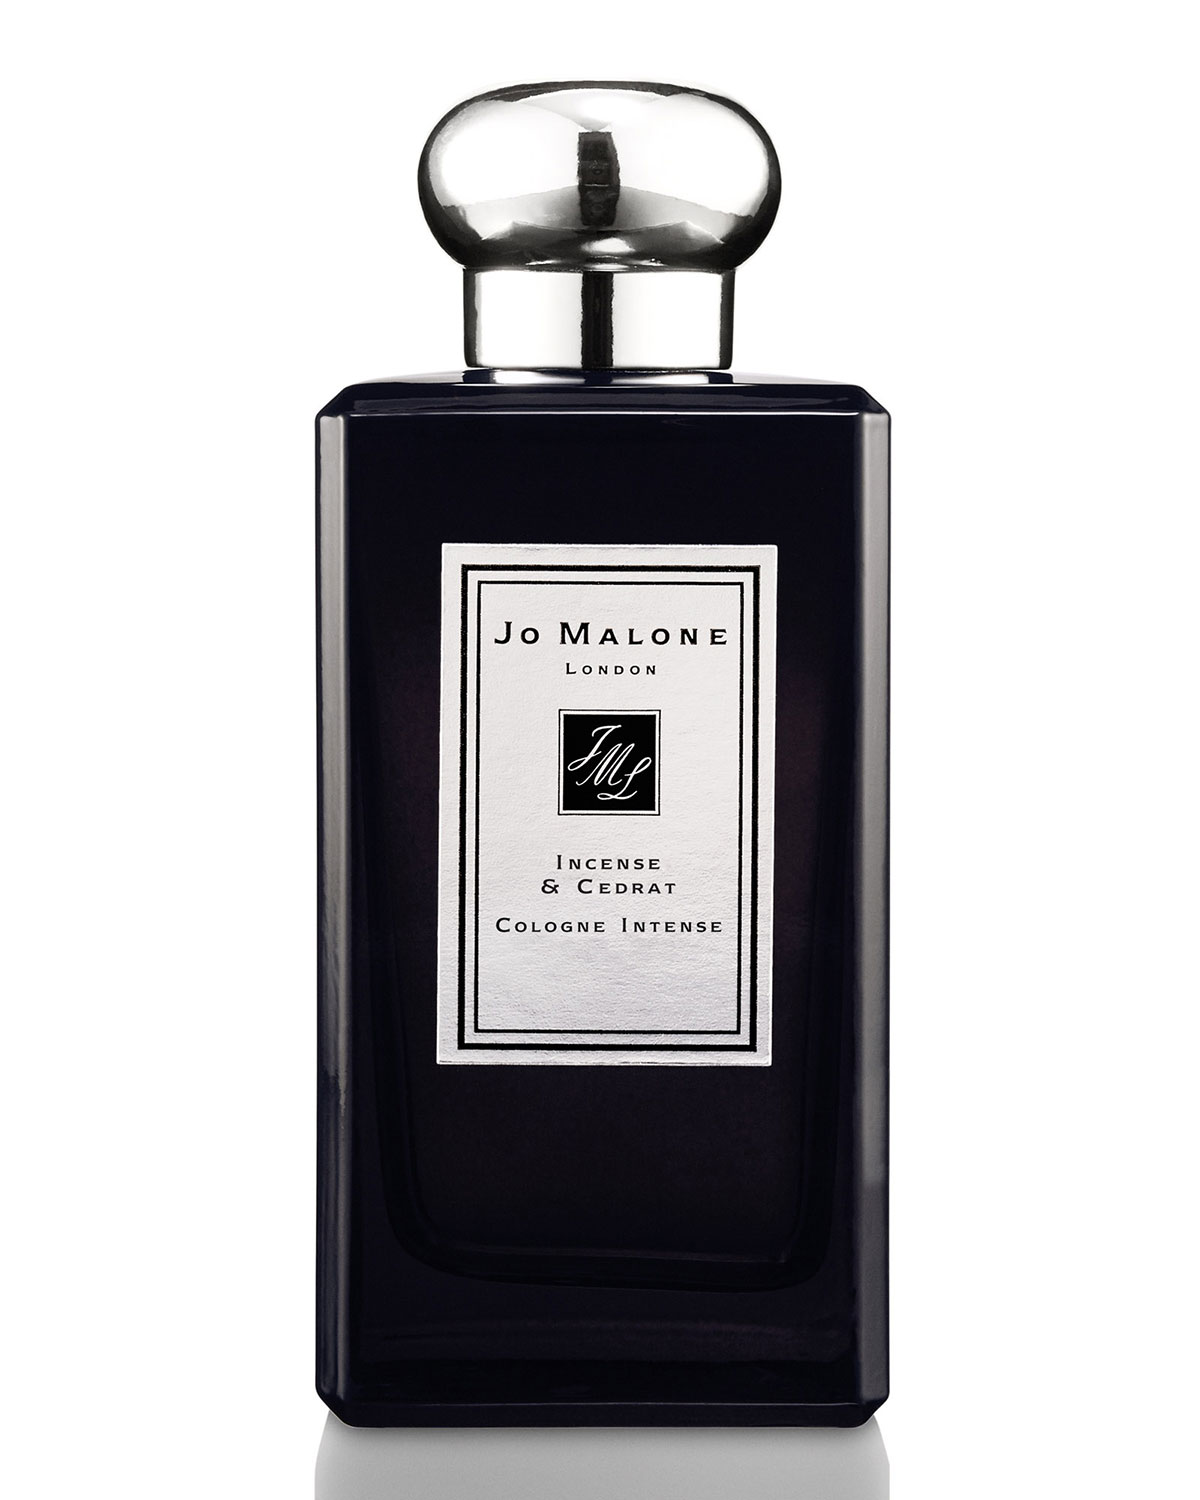 Jo Malone London 3.4 oz. Incense & Cedrat